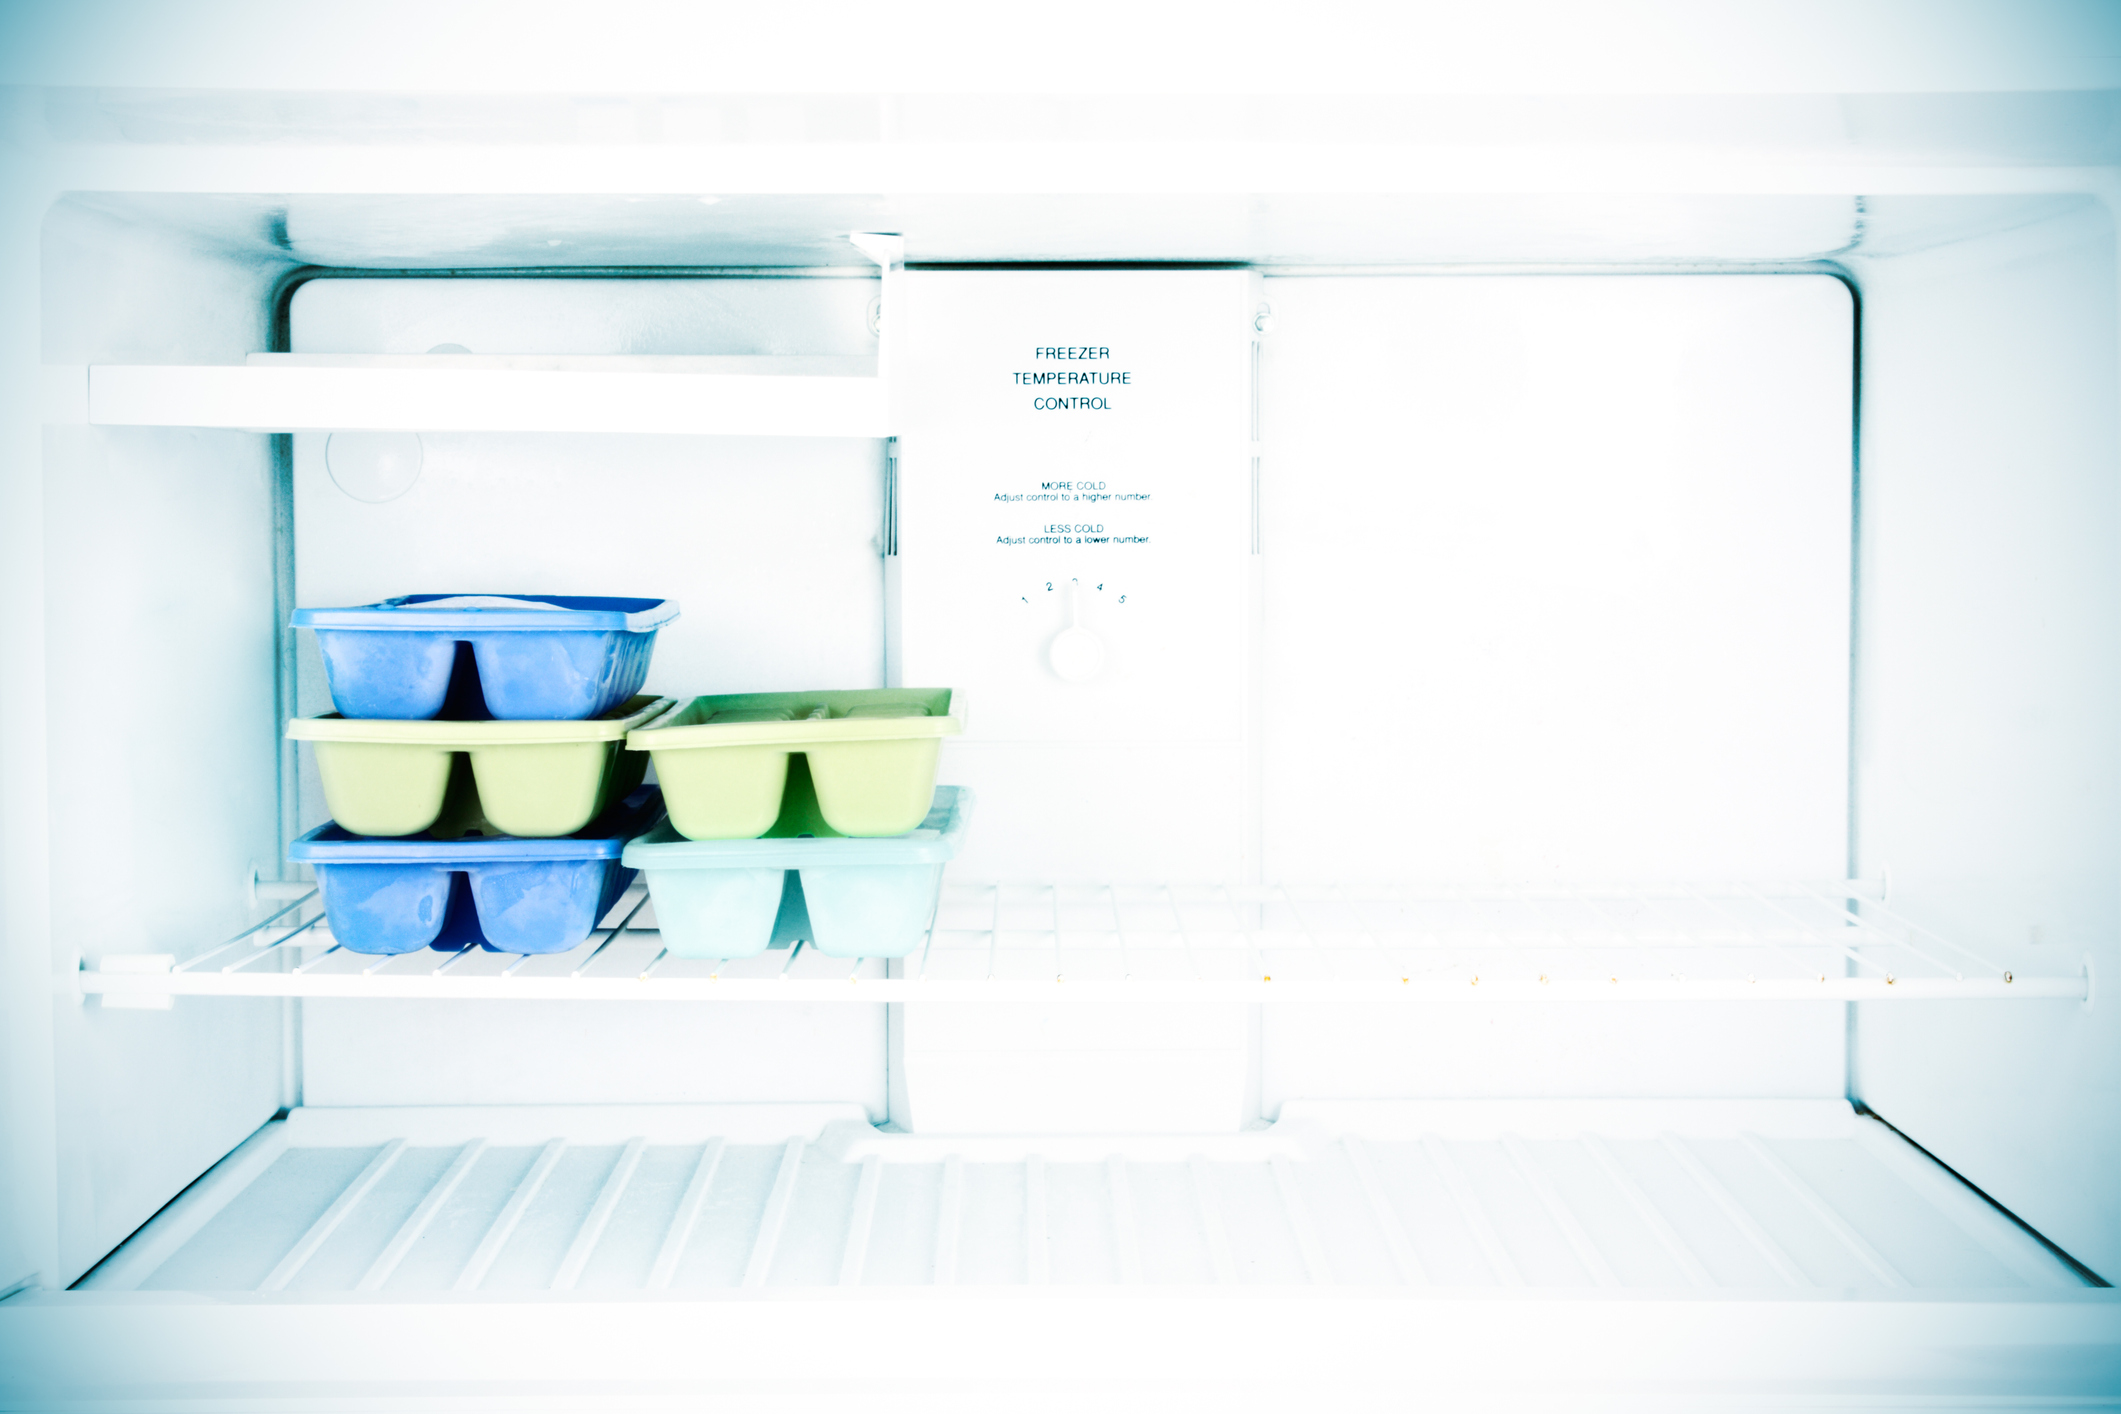 Ice cube trays sit in a freezer.